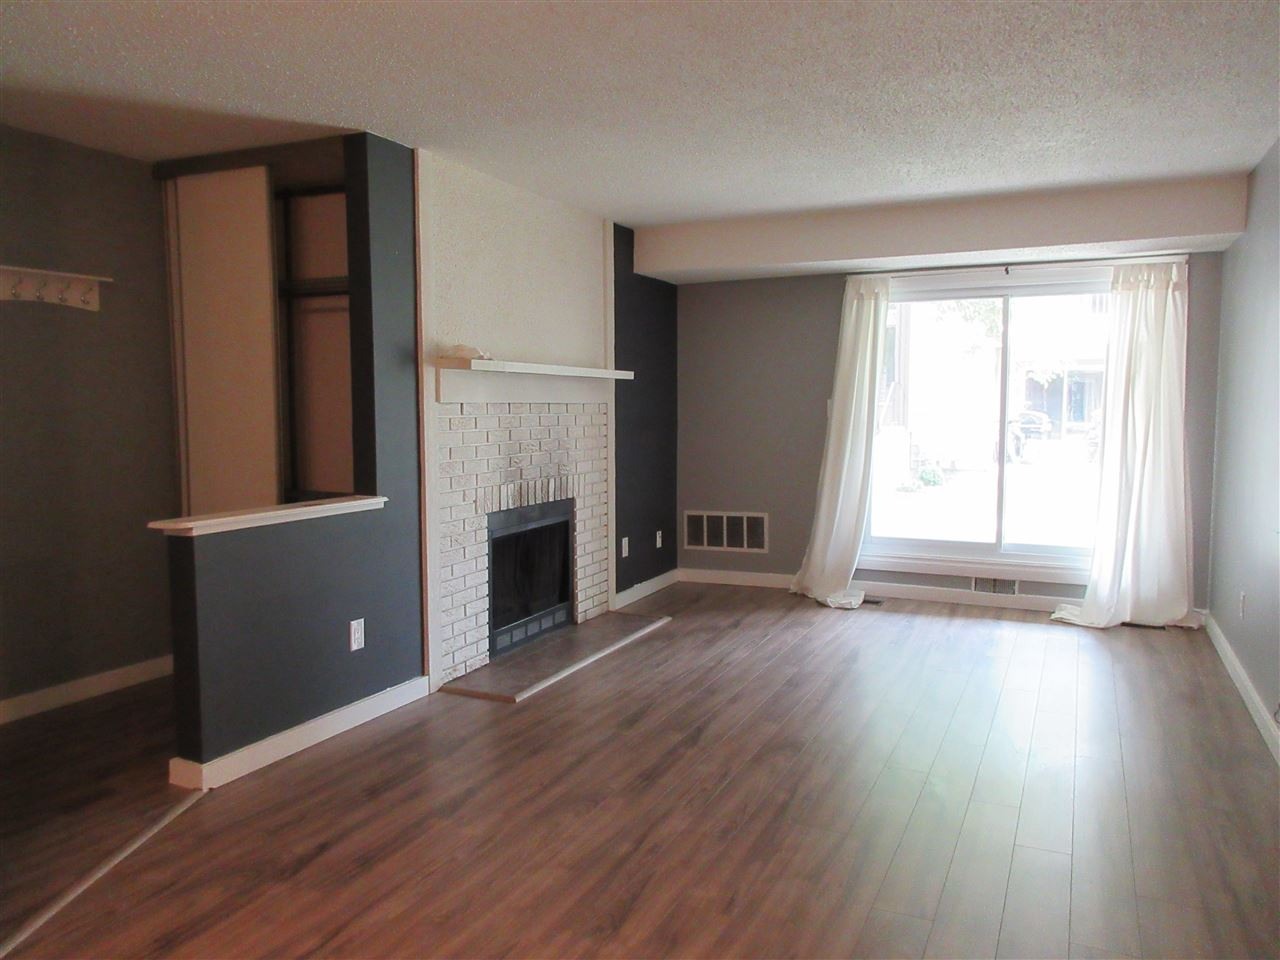 Photo 8: 103 51 AKINS Drive: St. Albert Condo for sale : MLS® # E4060963